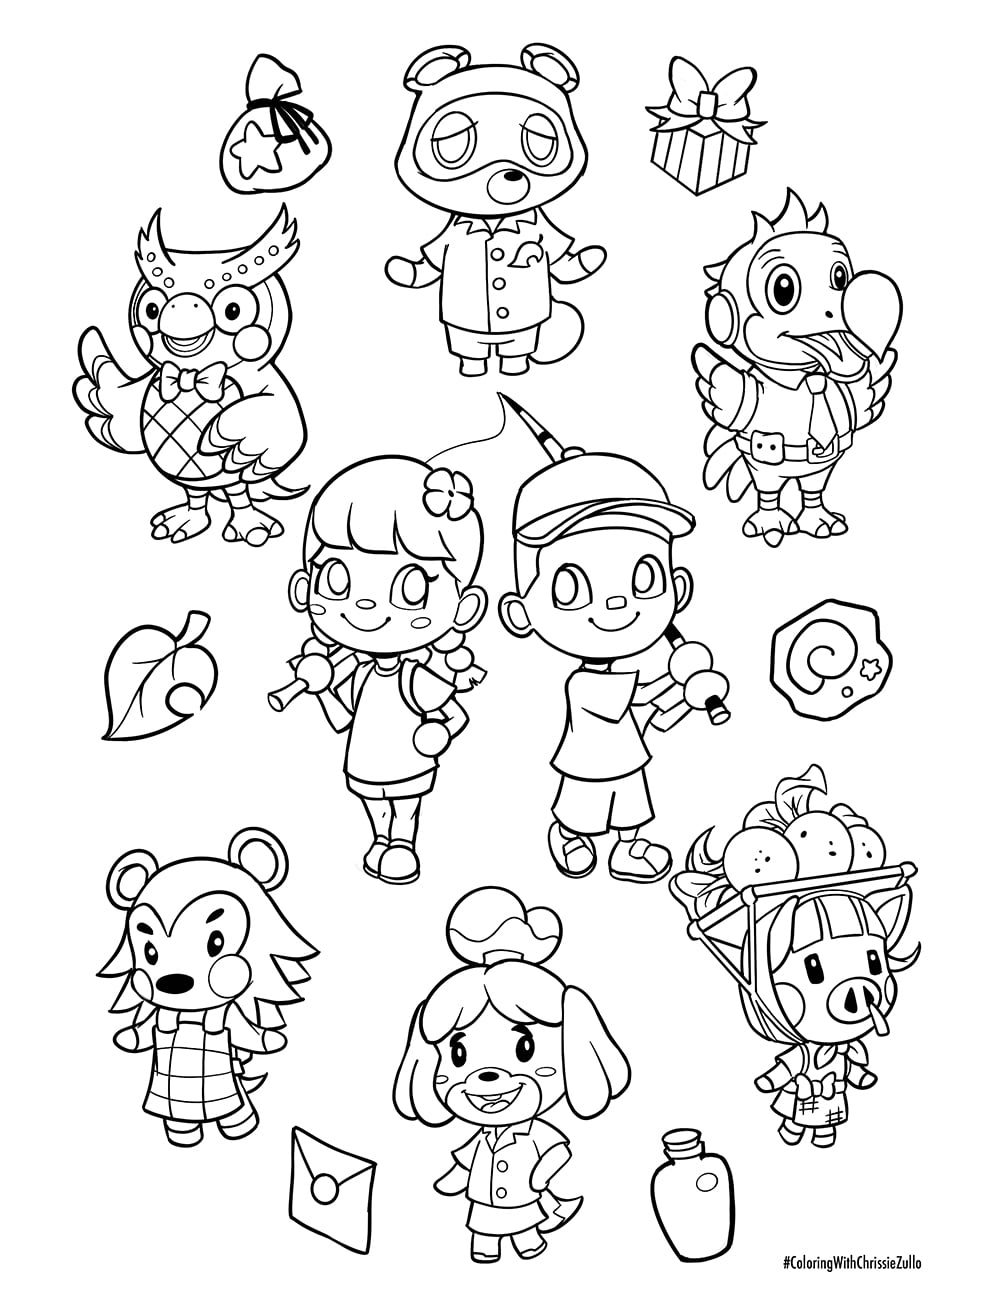 Printable Animal Crossing Coloring Pages : printable, animal, crossing, coloring, pages, Animal, Crossing, Coloring, Sheet, Chrissie, Zullo, Comic